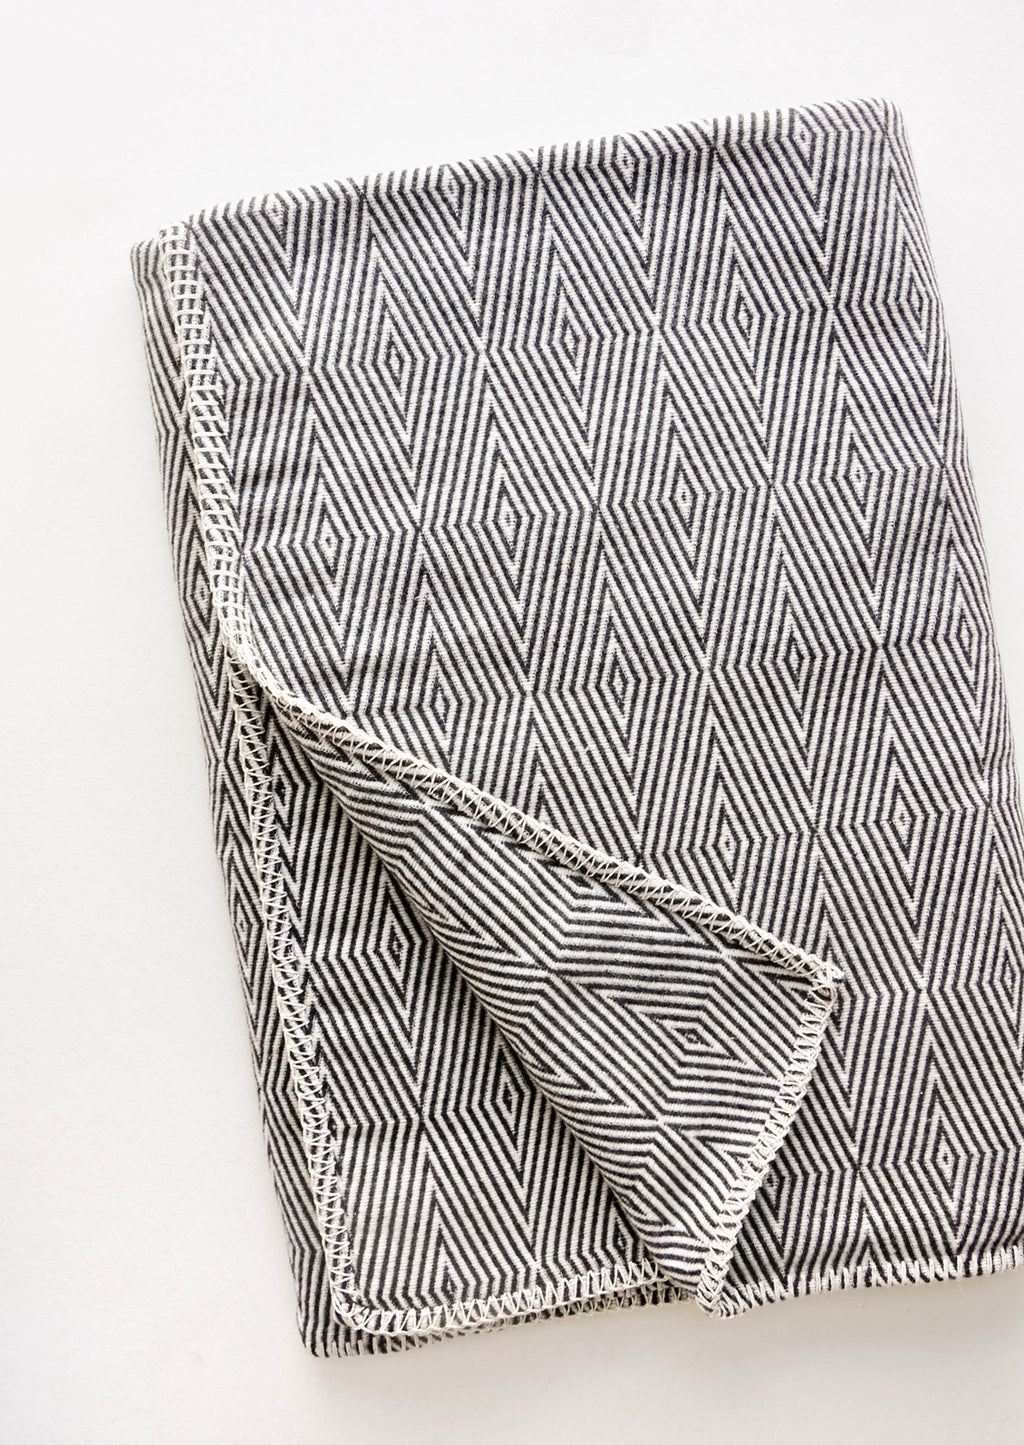 1: Cotton blanket with allover geometric diamond pattern in black and white